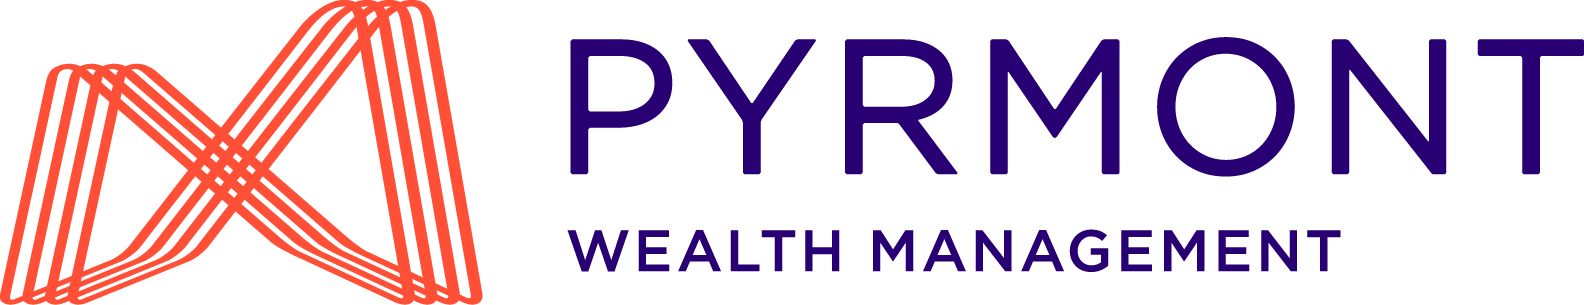 Pyrmont Wealth Management Logo - HK